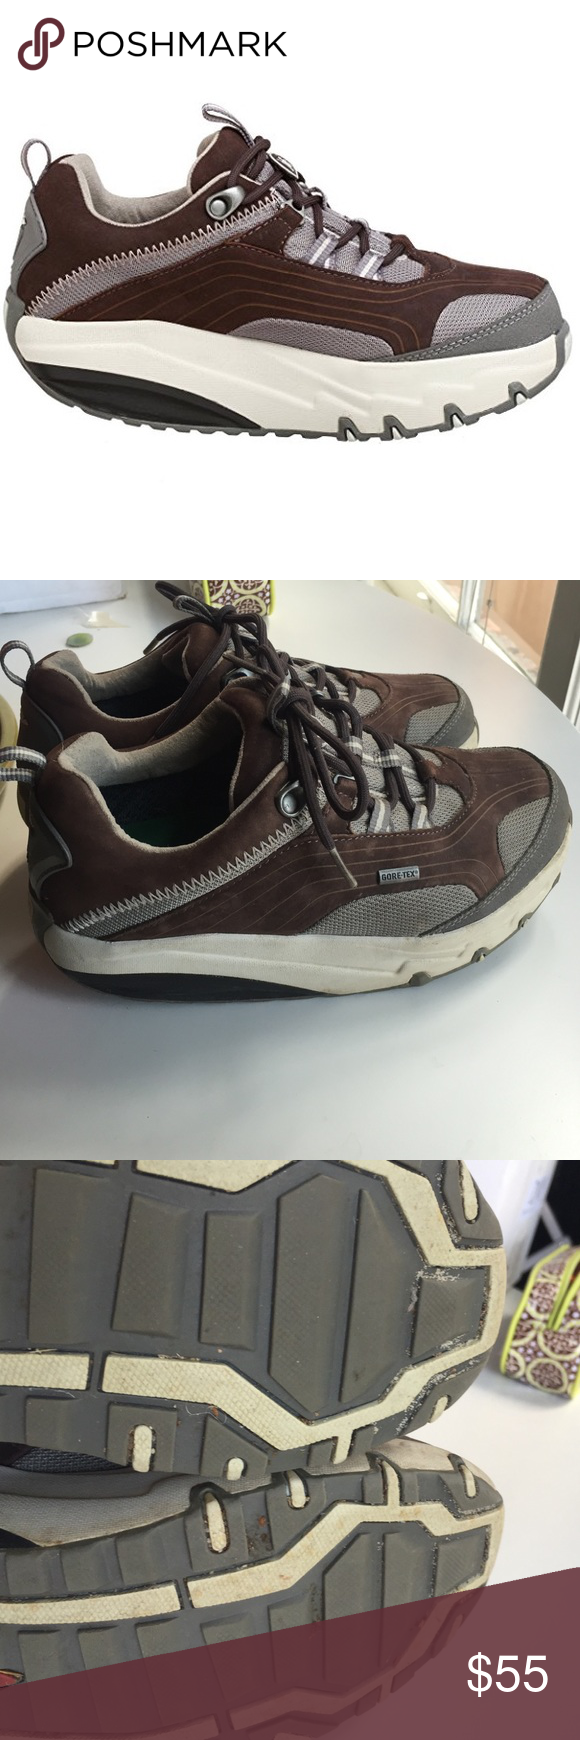 1c5528e34955 MBT shoes Swiss engineered masai trail shoes. Has the rock back and forth  sole which